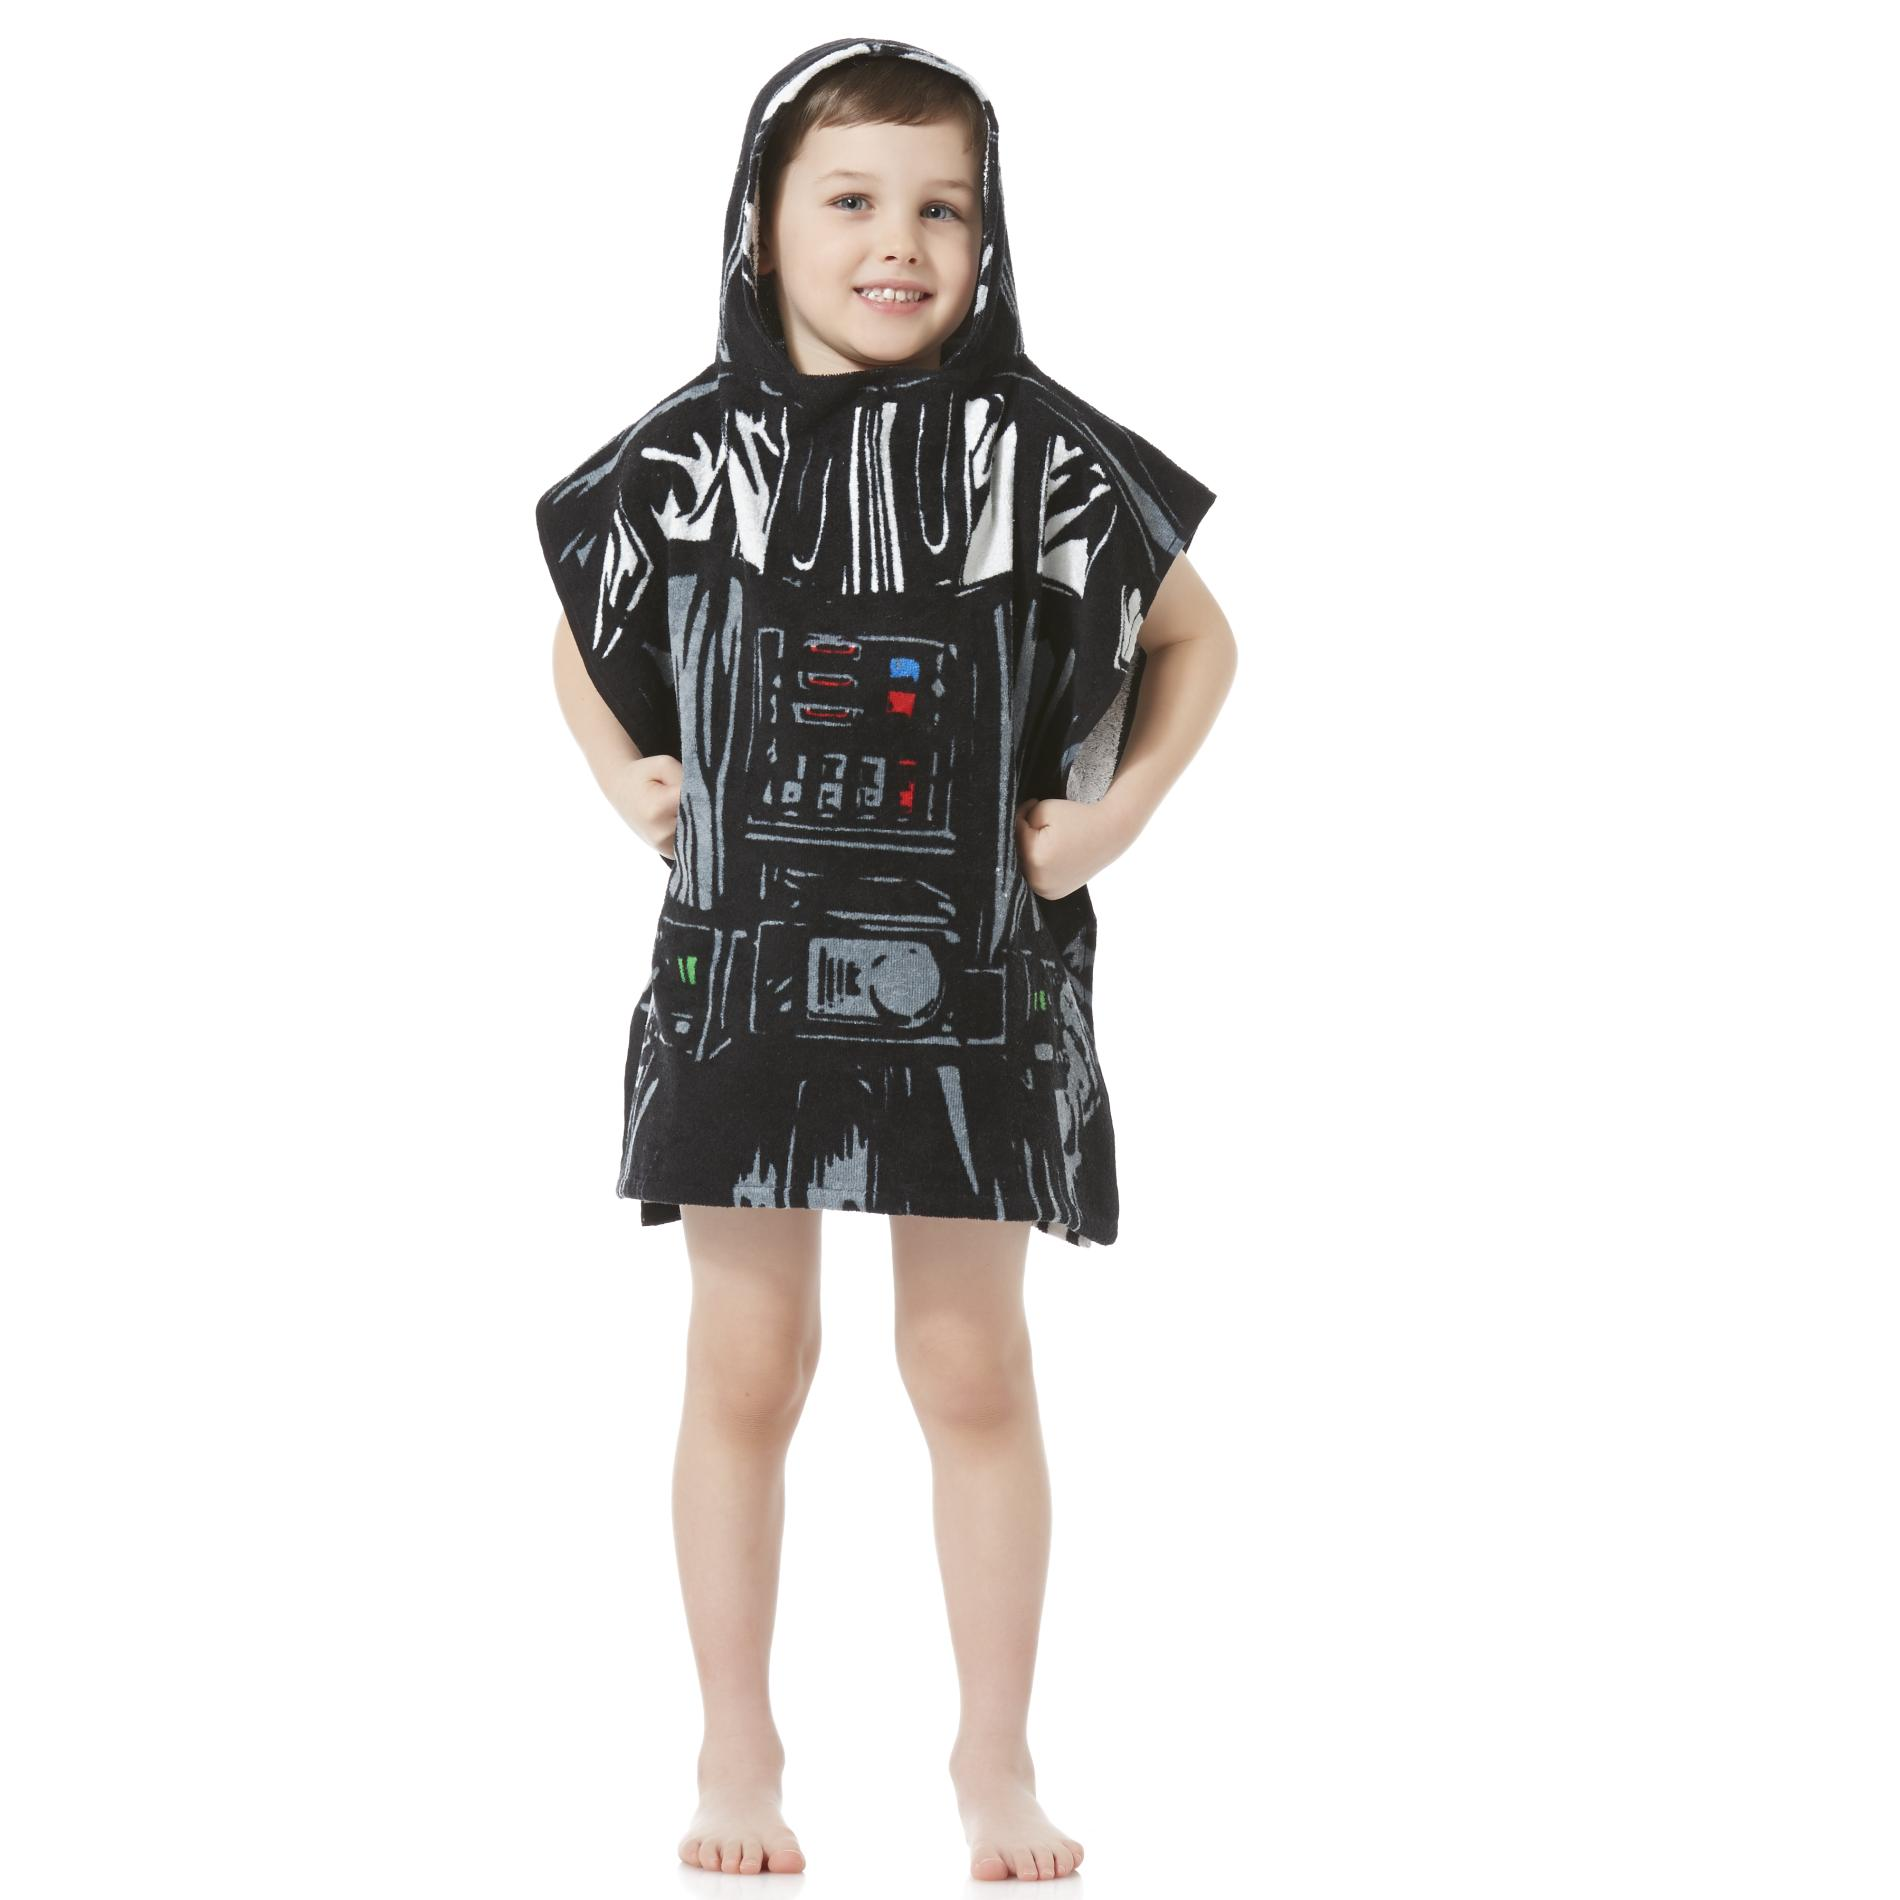 Star Wars Boy's Hooded Bath Towel